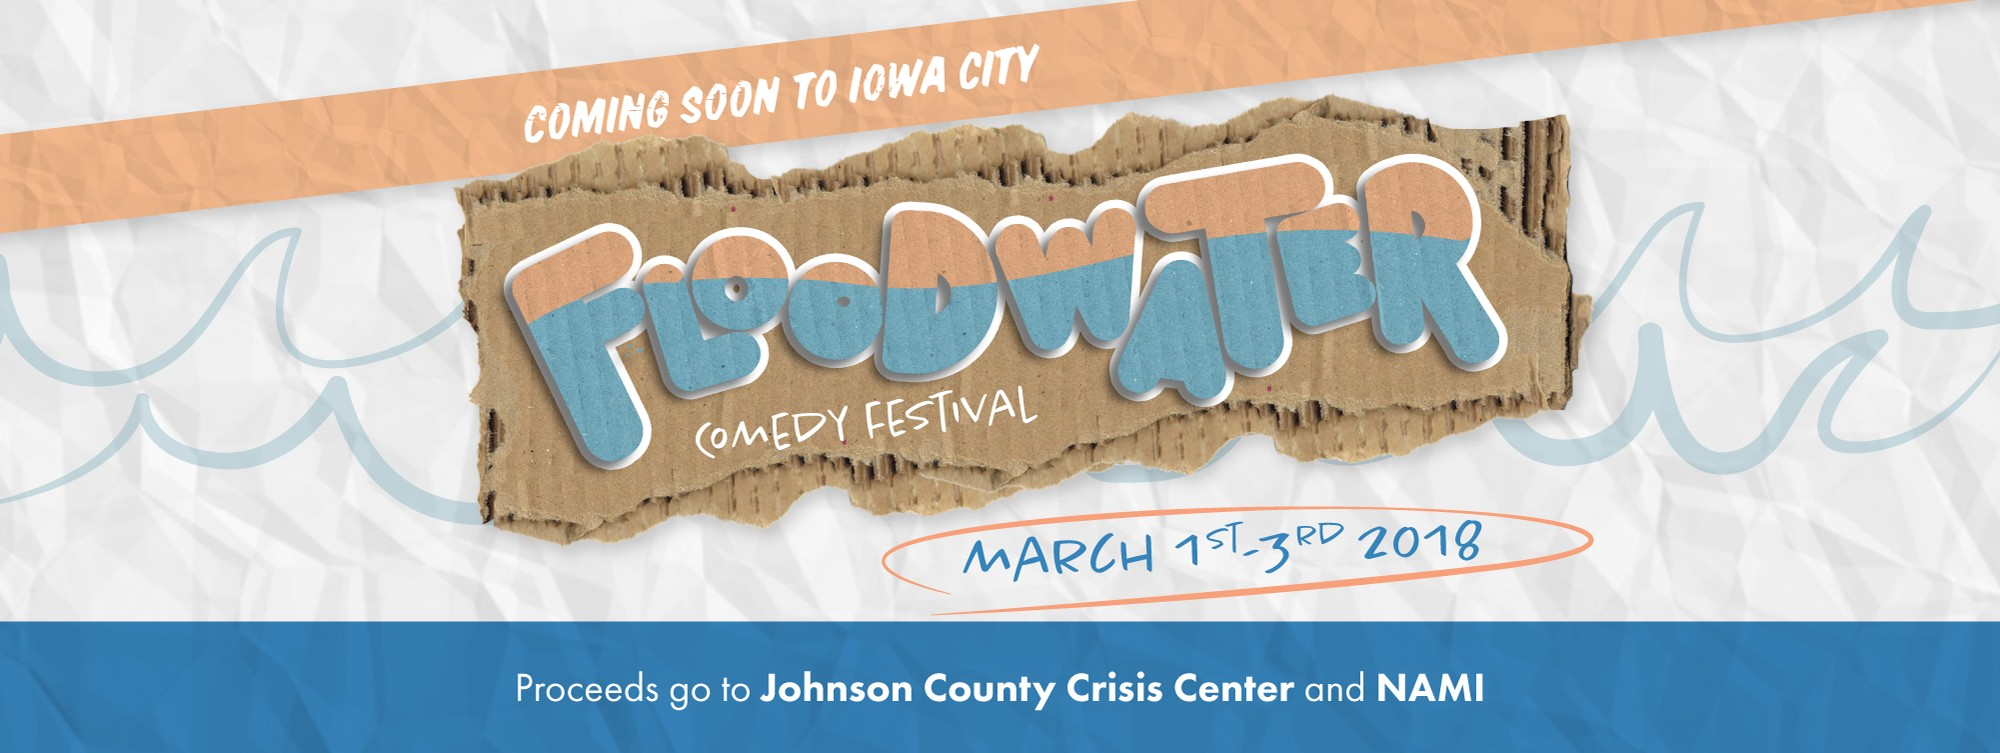 Floodwater Comedy Festival Passes Tickets | Downtown Iowa City | Iowa City,  IA | Thu, Mar 1, 2018 at 7pm - Sun, Mar 4, 2018 at 2am | Little Village